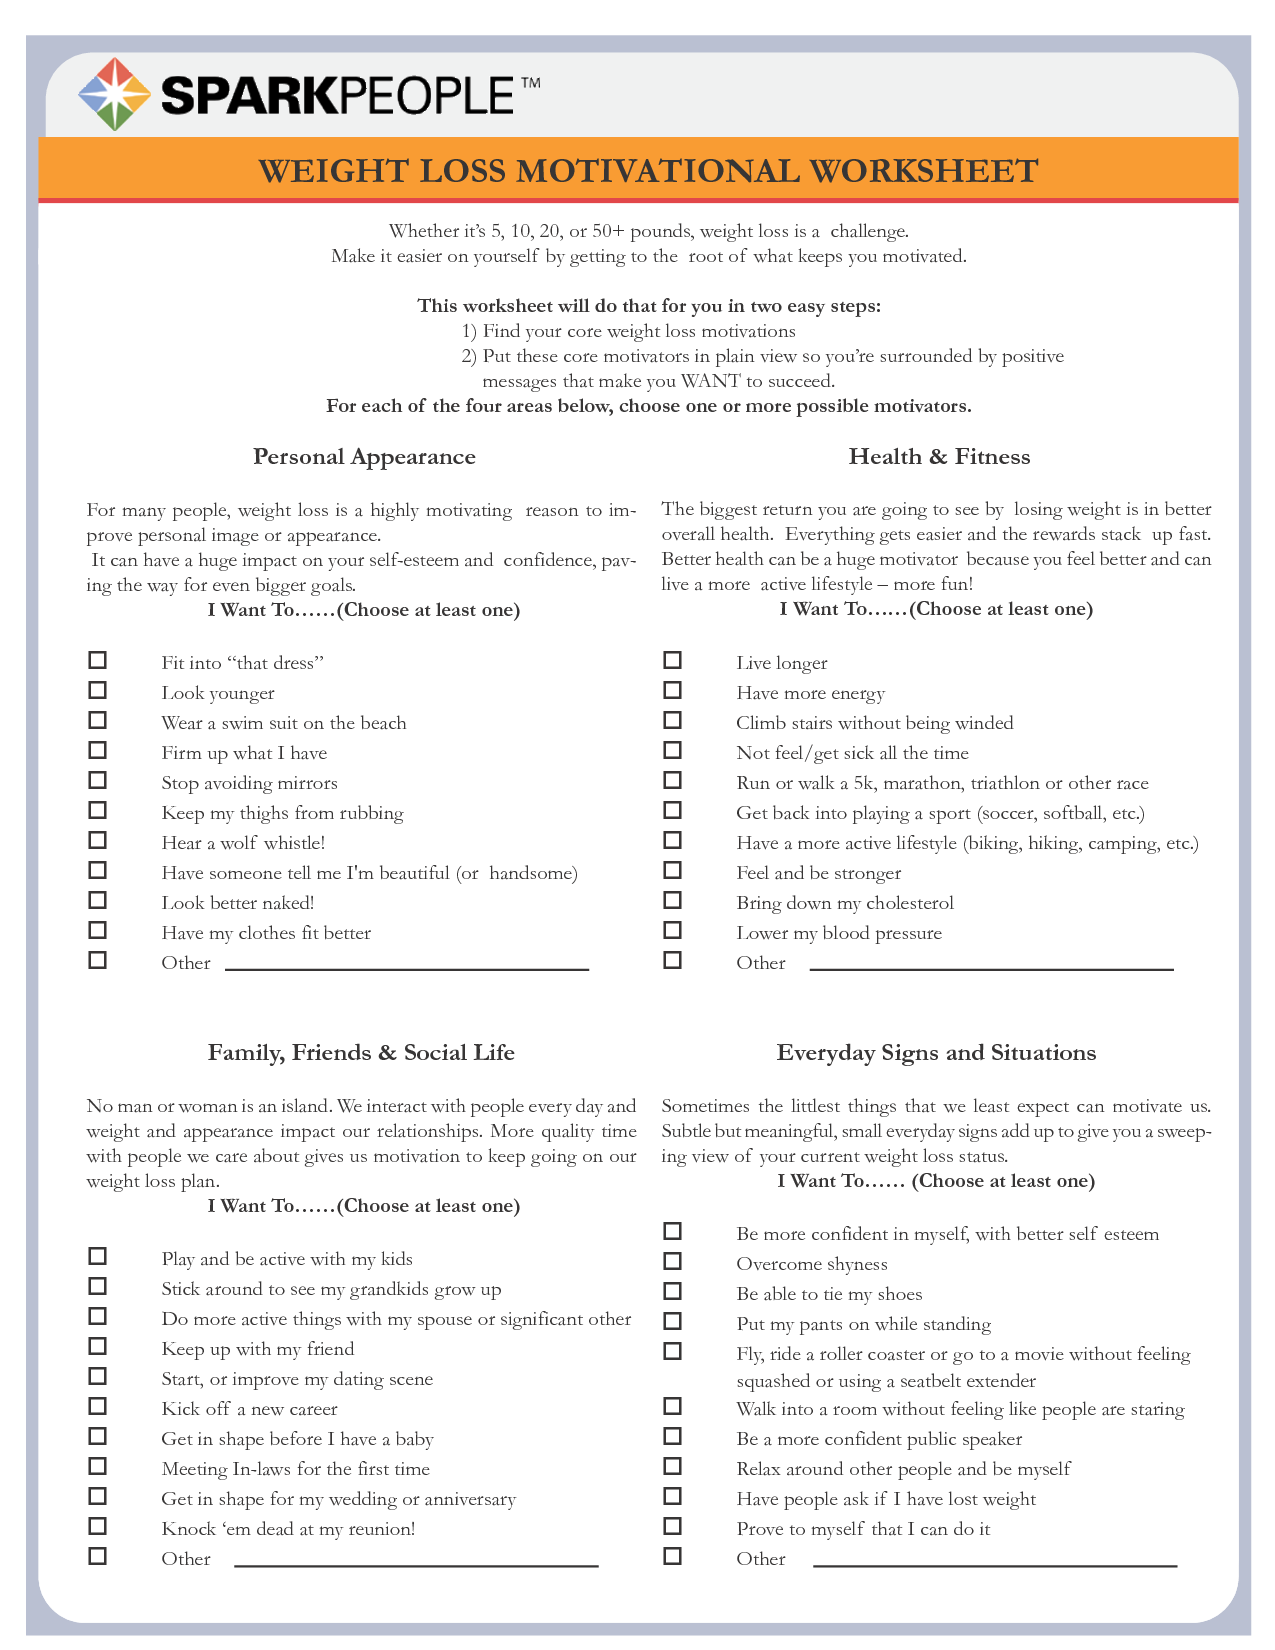 worksheet Motivation Worksheets pin by angela maria on healthfitness pinterest weight loss motivation